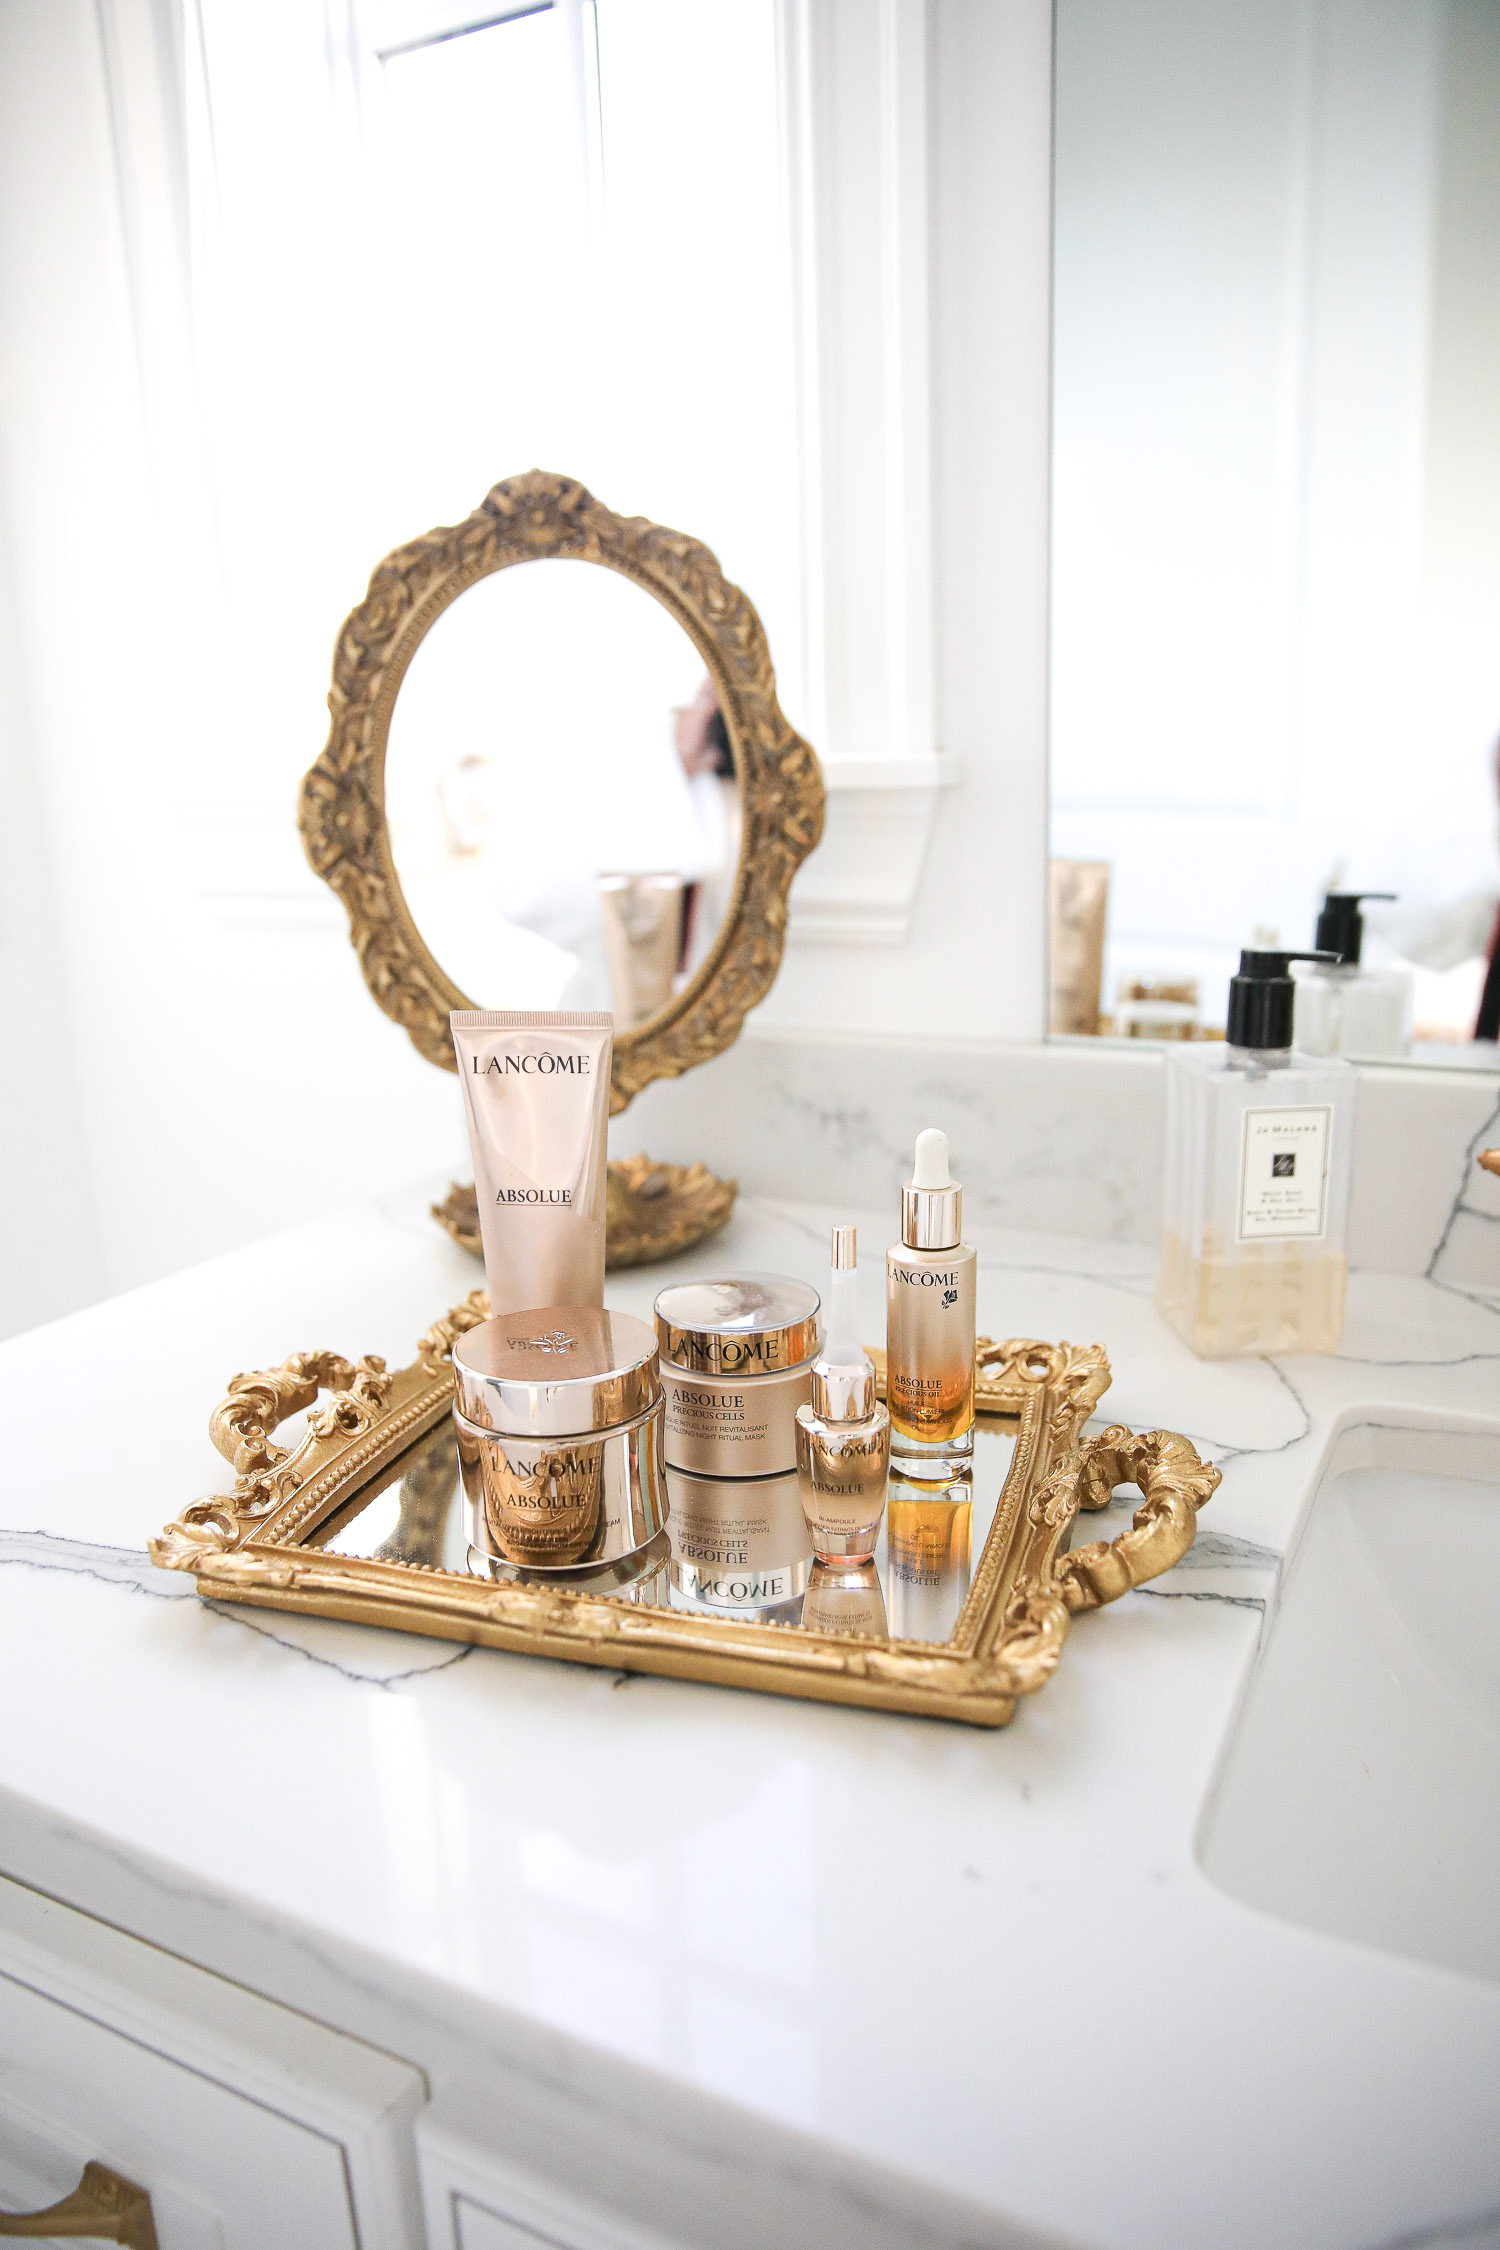 Lancome Skincare by popular US beauty blog, The Sweetest Thing: image of Lancome Absolue skincare products on a mirrored tray with gold handles.